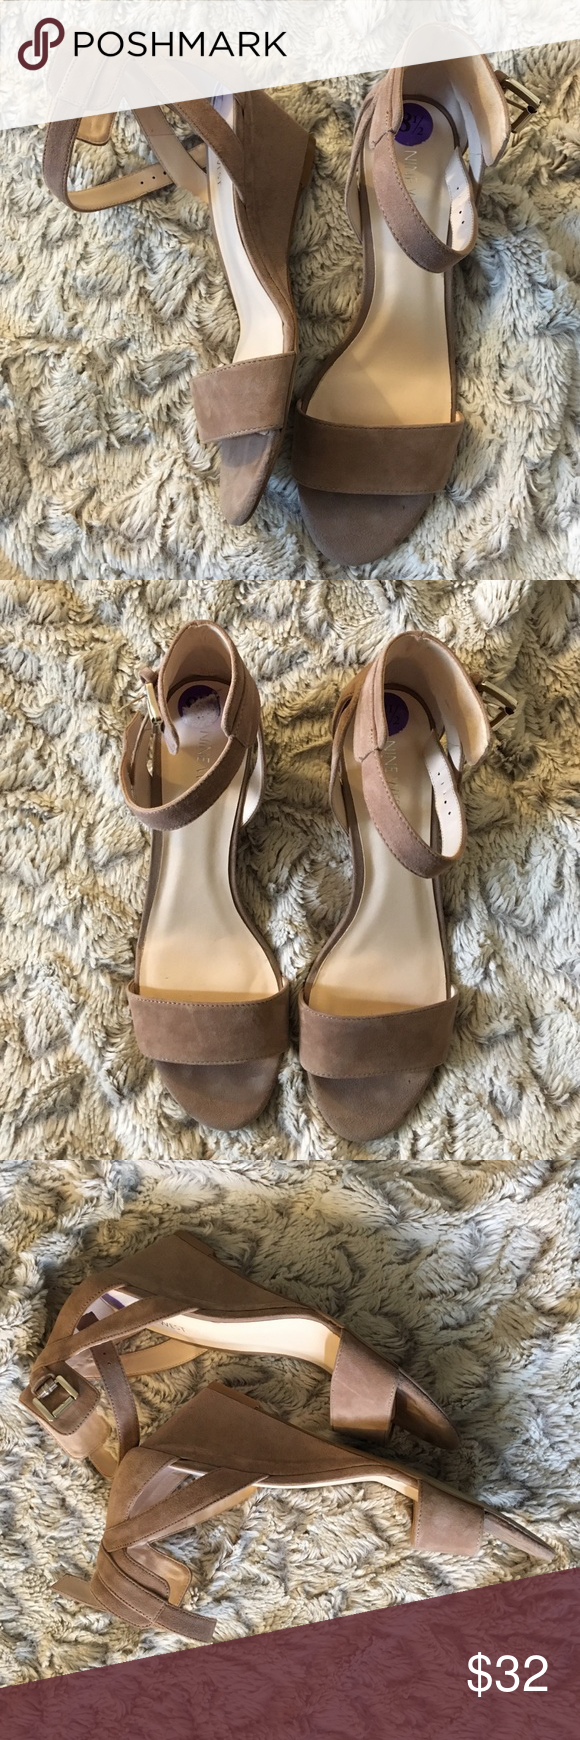 Nine West beige wedges Worn once! GREAT condition! 👍🏻 Nine West beige wedges! Size: 8.5 💕 All sales are negotiable within reason! Make me an offer! 💖 Nine West Shoes Wedges